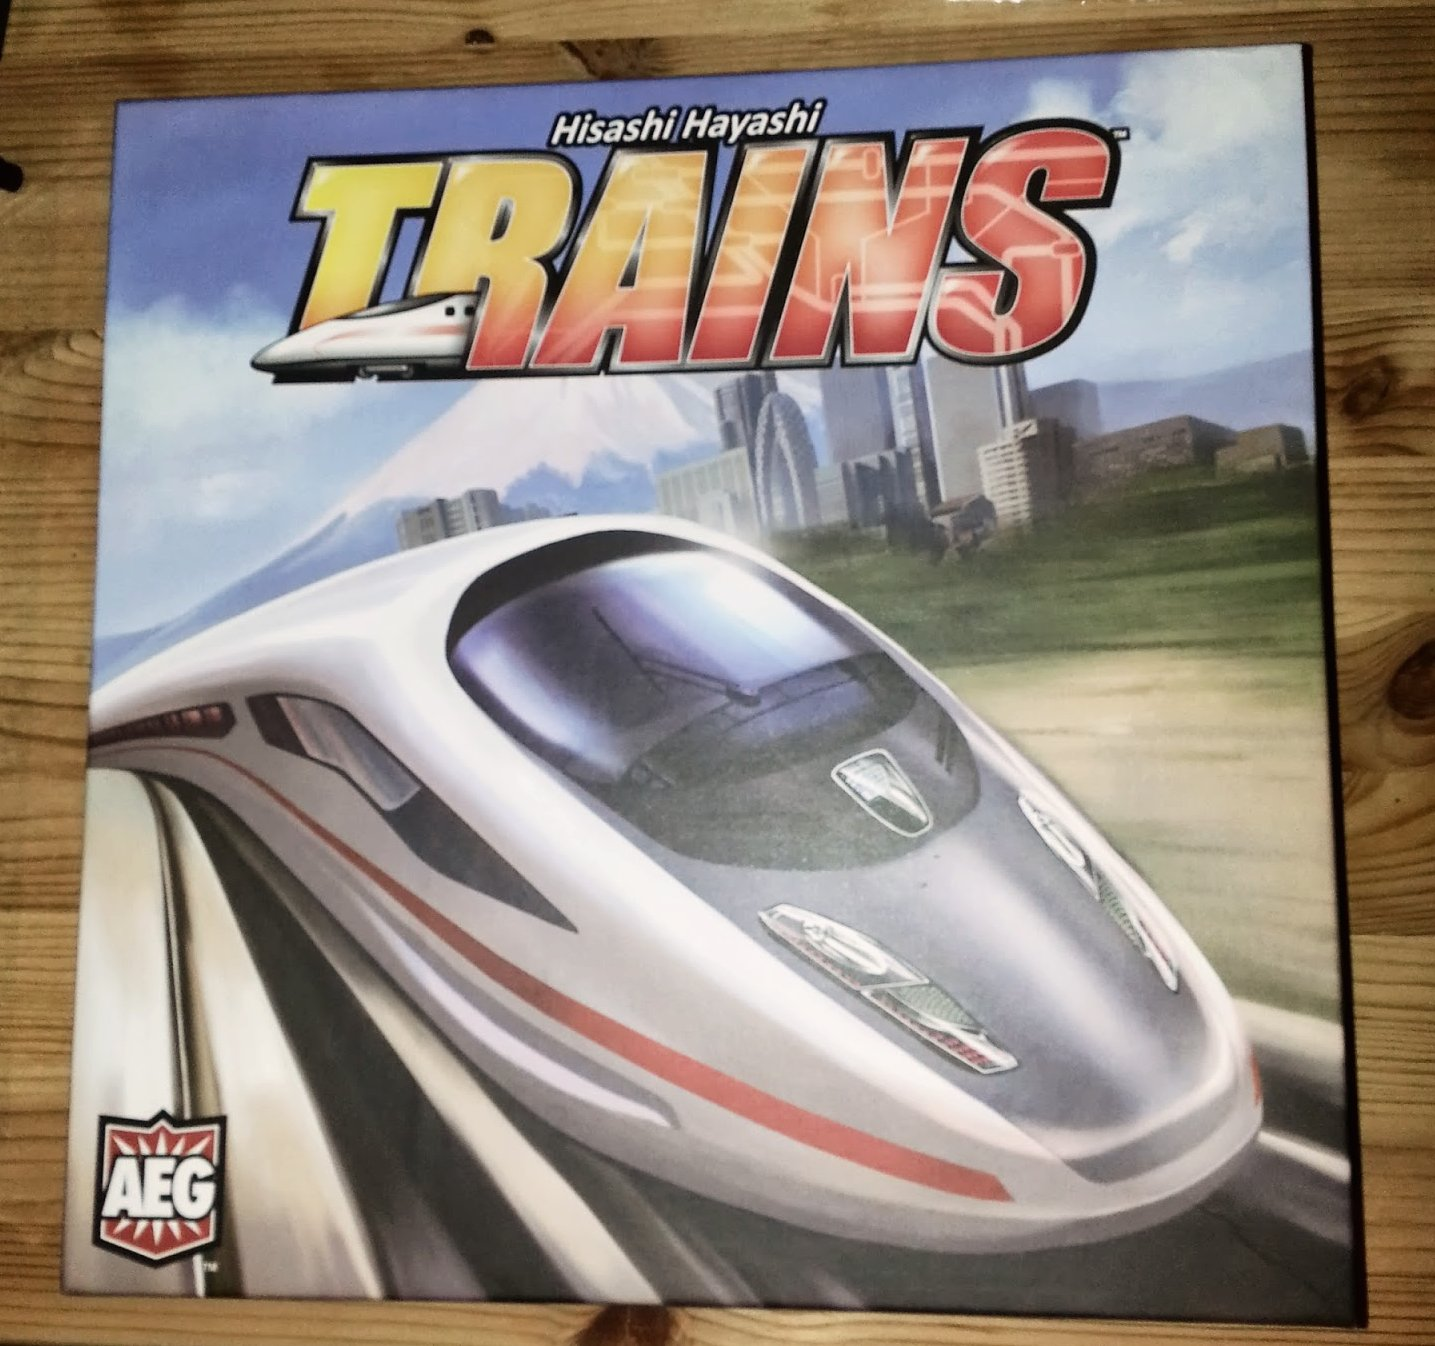 Trains: deck building comes to train games. What's more, there's a board in there!